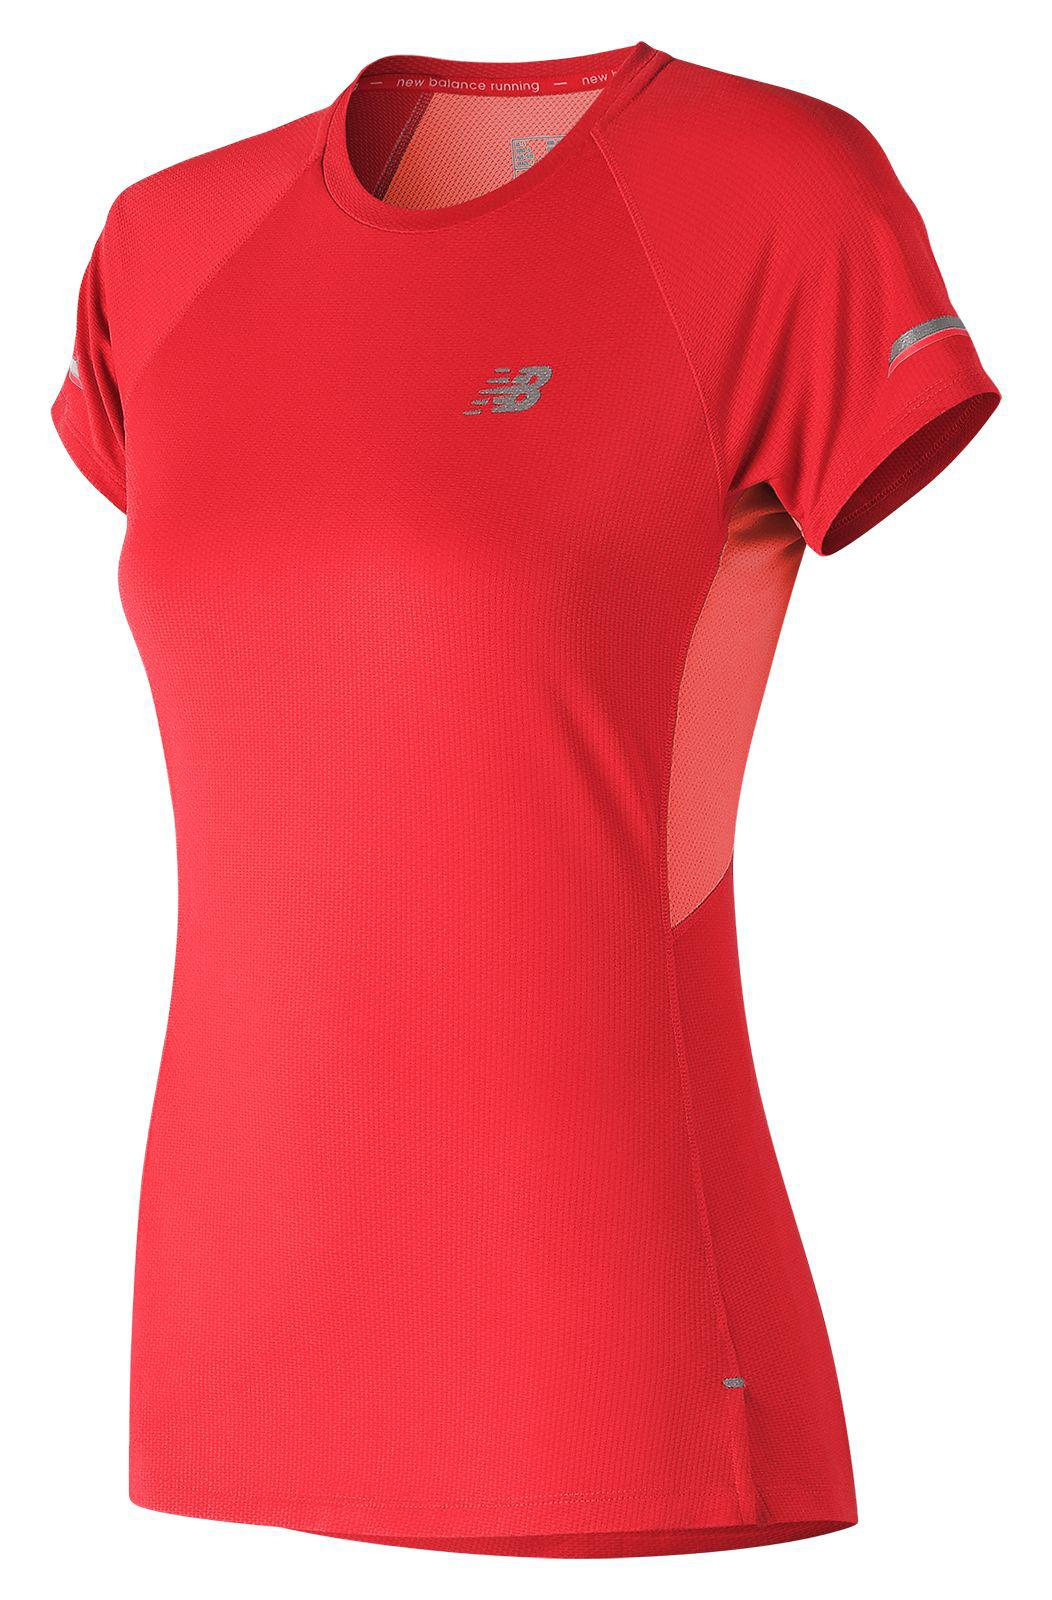 New Balance. Women's Red Nb Ice 2.0 Short Sleeve